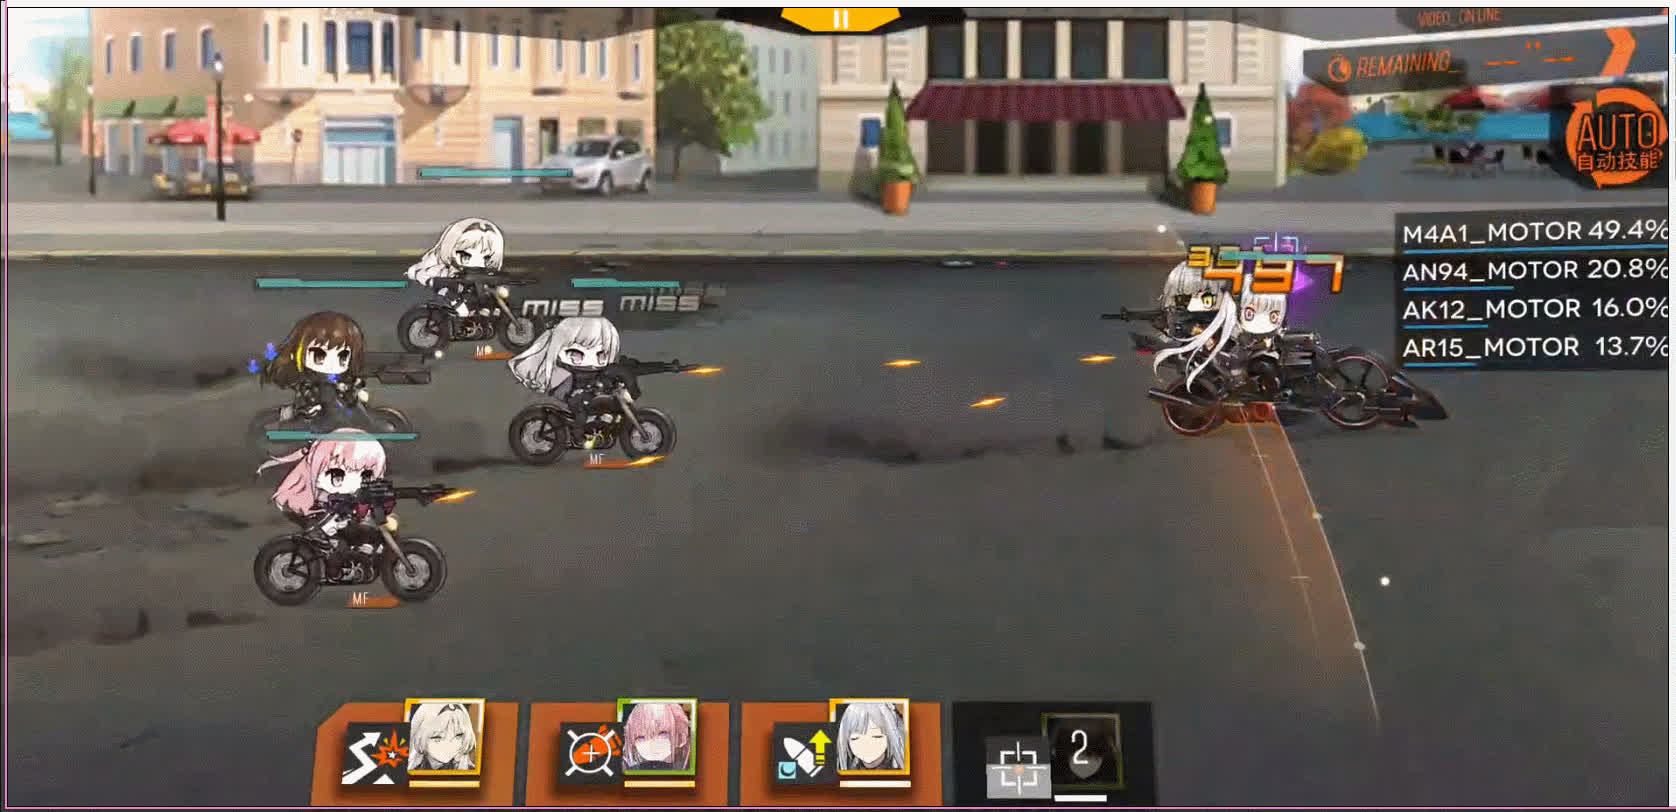 motorcycles GIFs